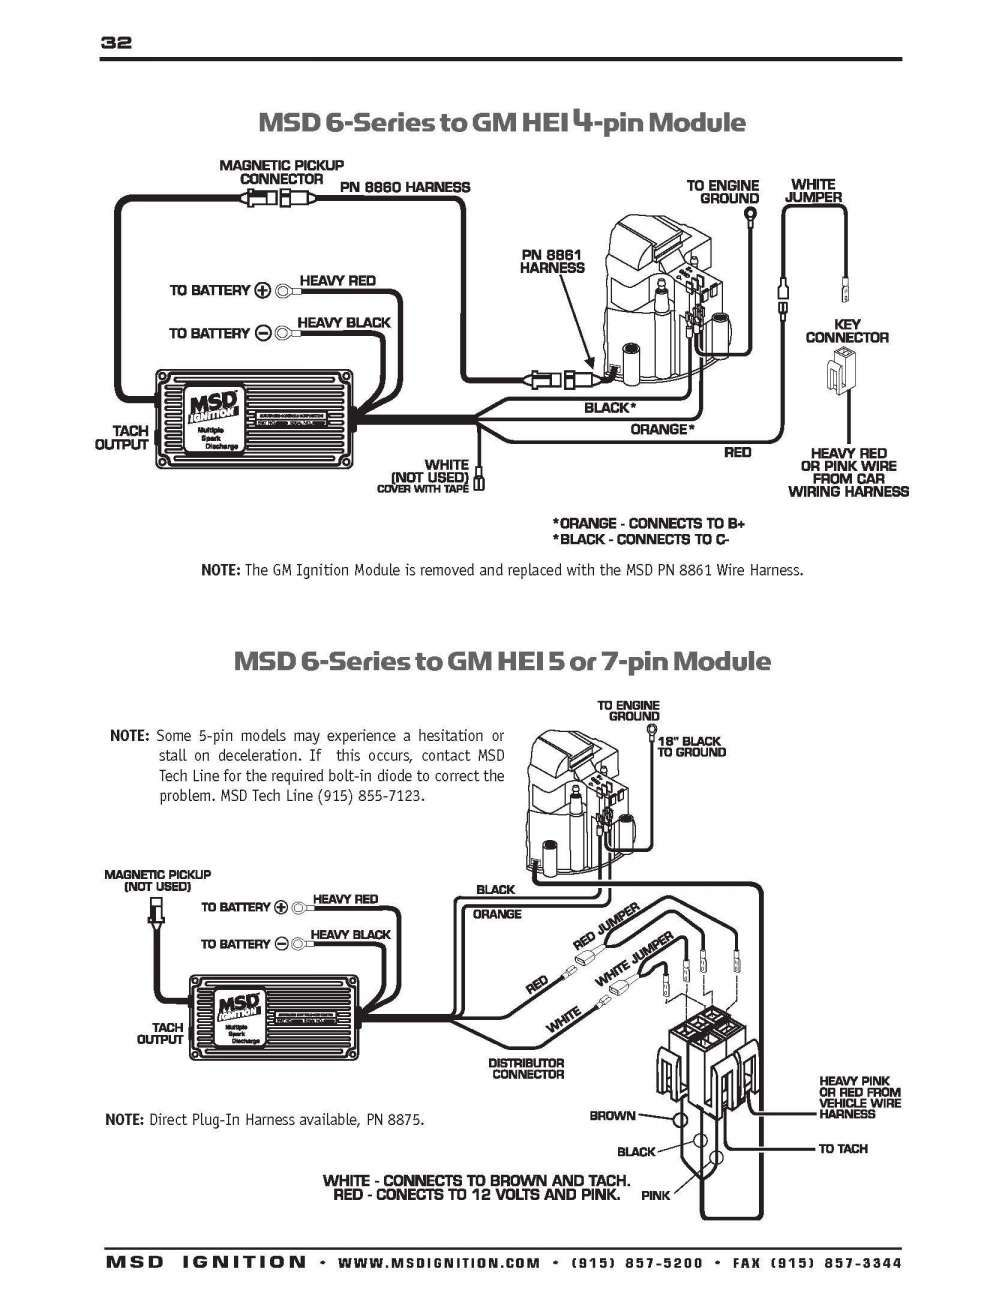 17+ Basic Hot Rod Engine Hei Wiring Diagram - Engine Diagram - Wiringg.net  | Diagram, Electrical diagram, WirePinterest